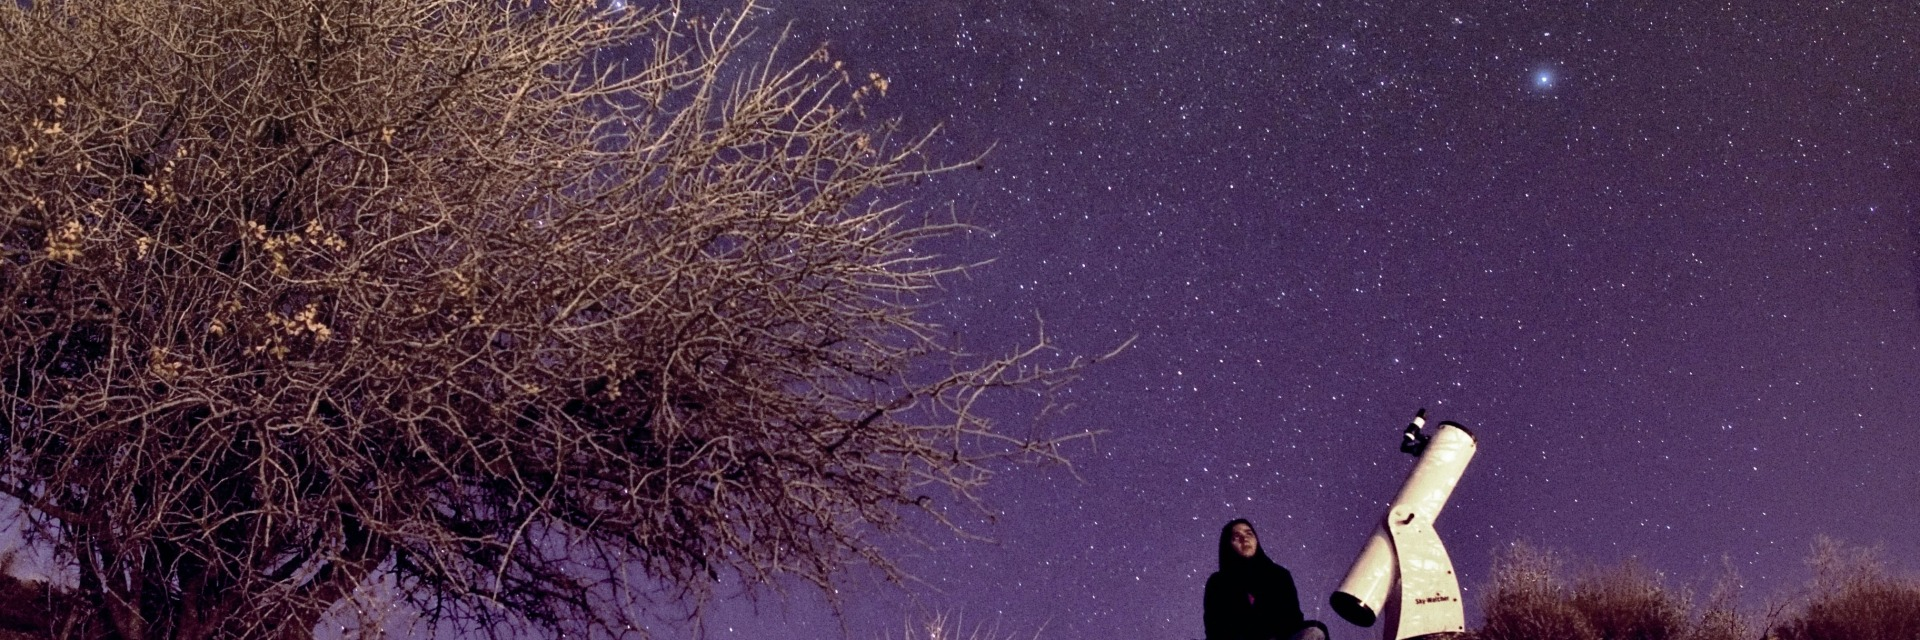 Woman with telescope looking up at the night sky. Still from the film Sapideh